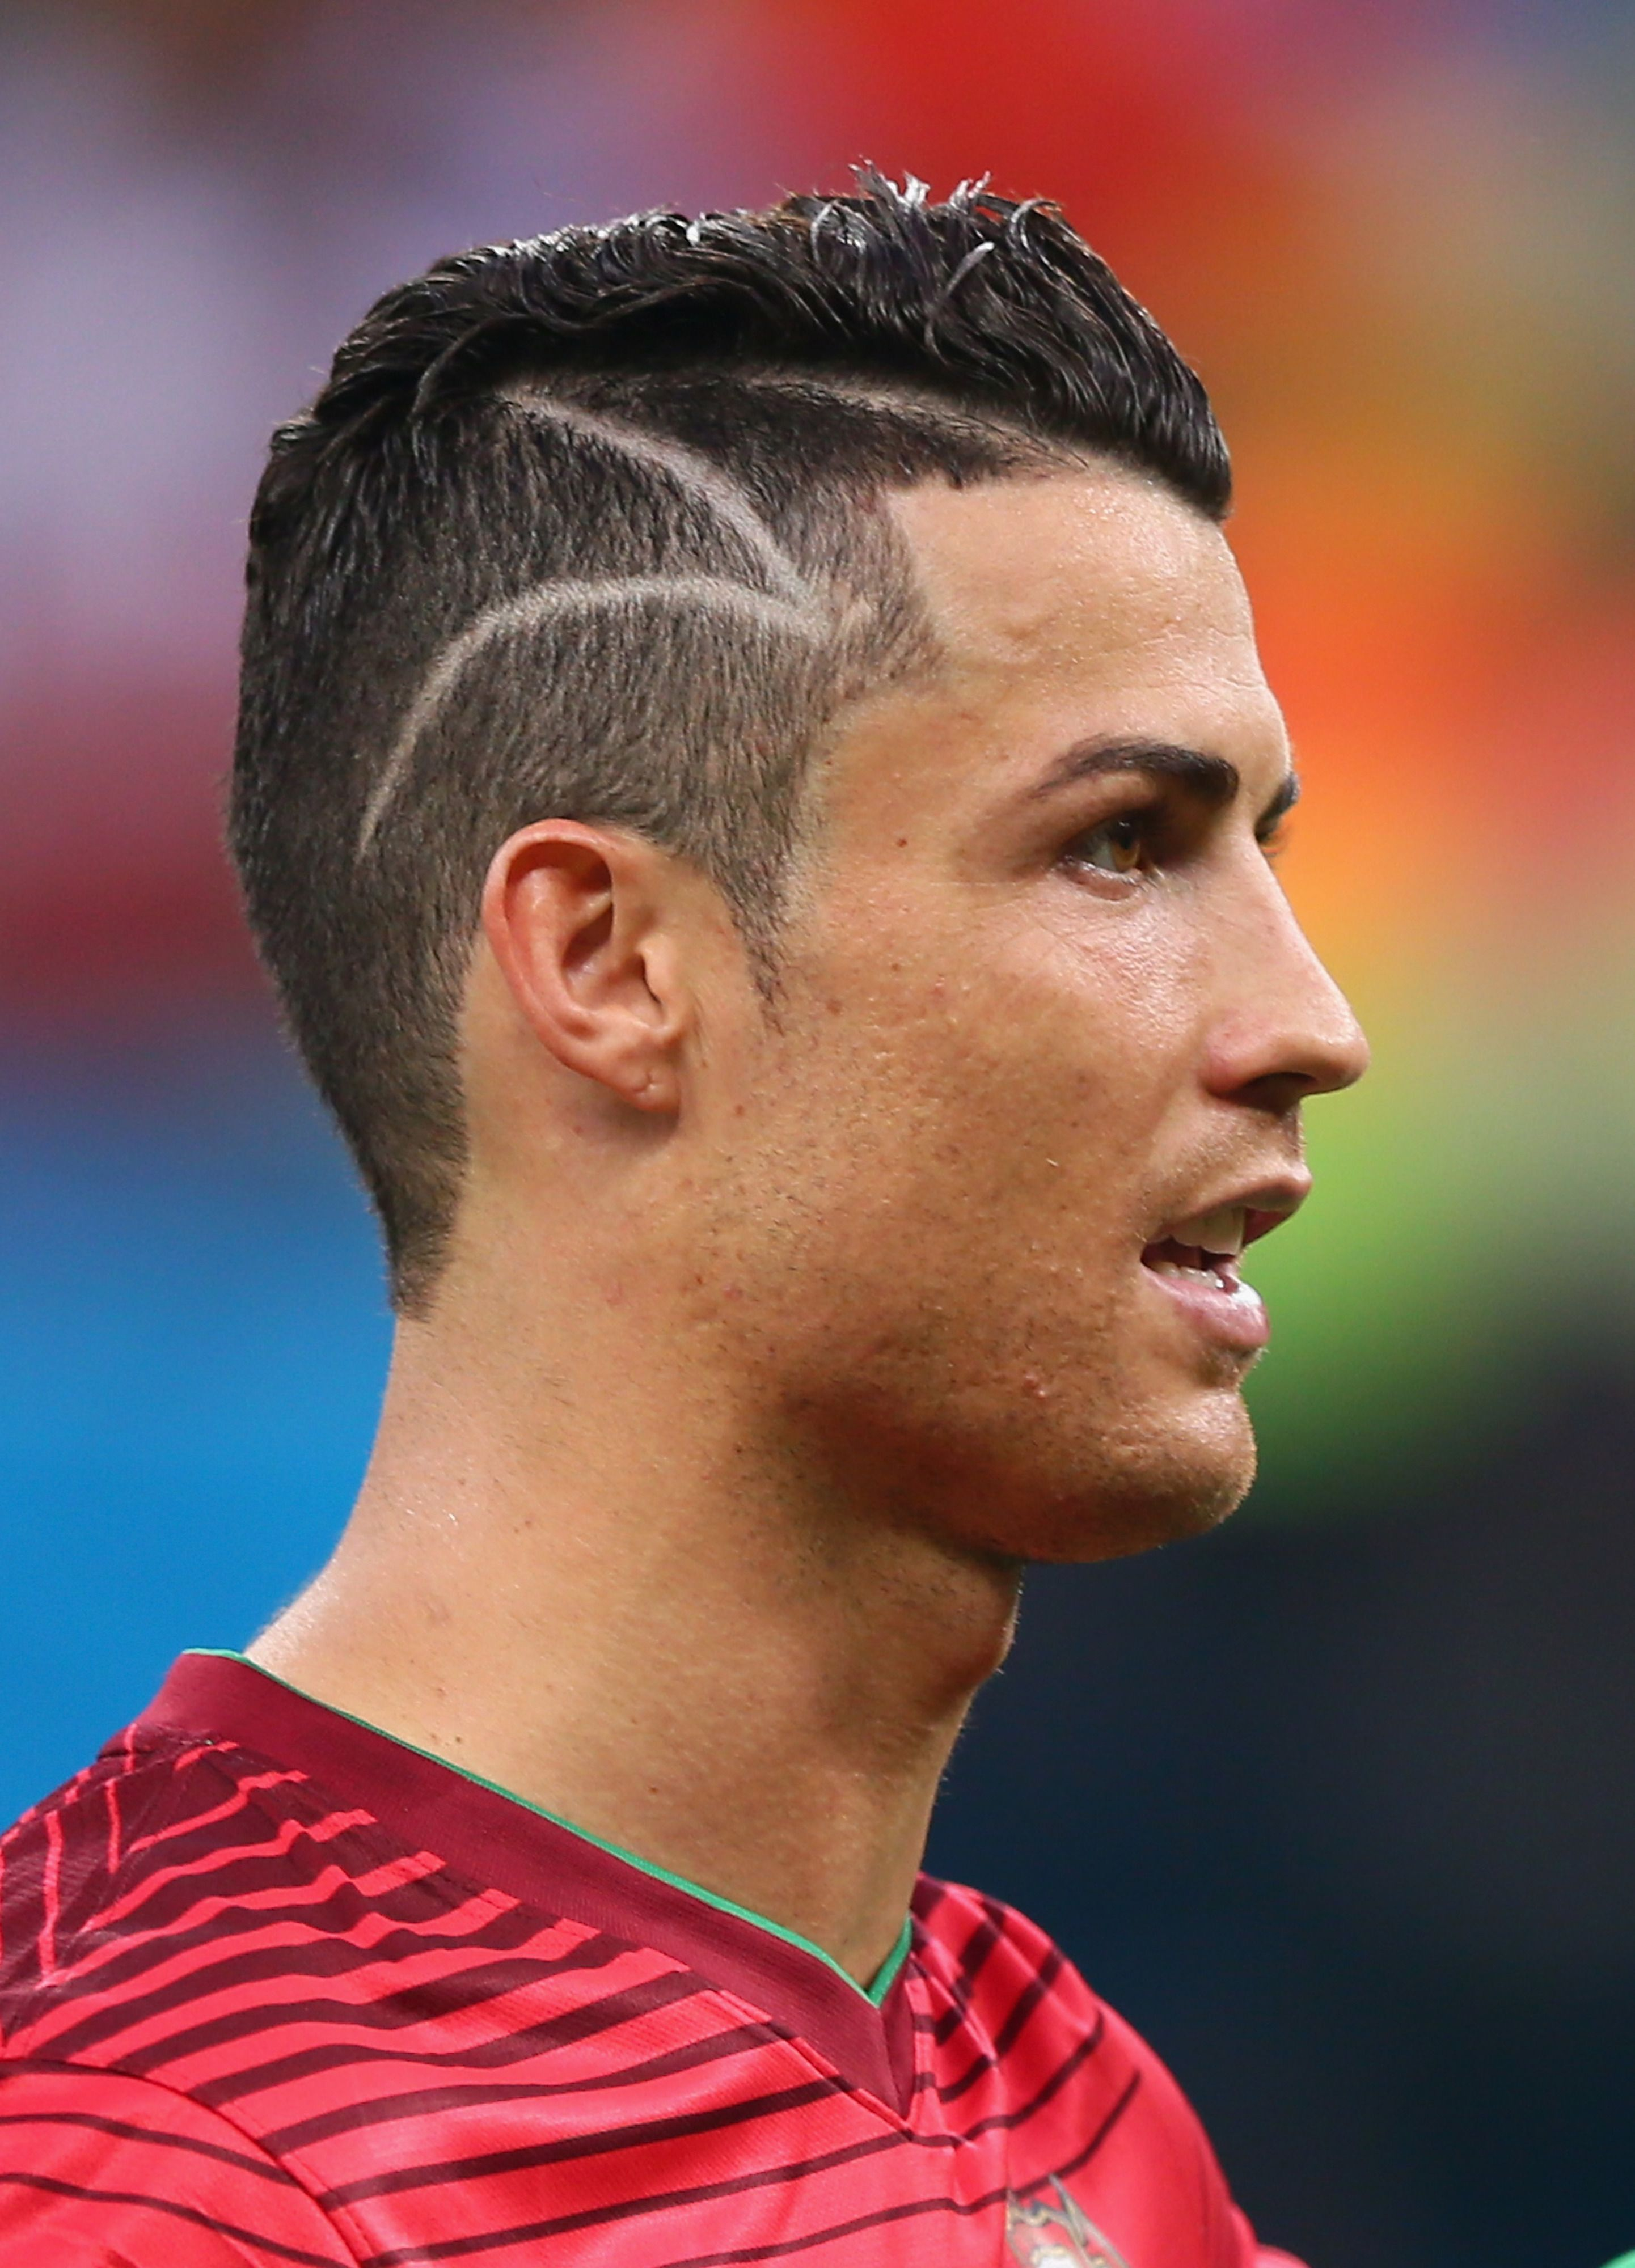 Cristiano Ronaldo Hairstyle Ideas 7